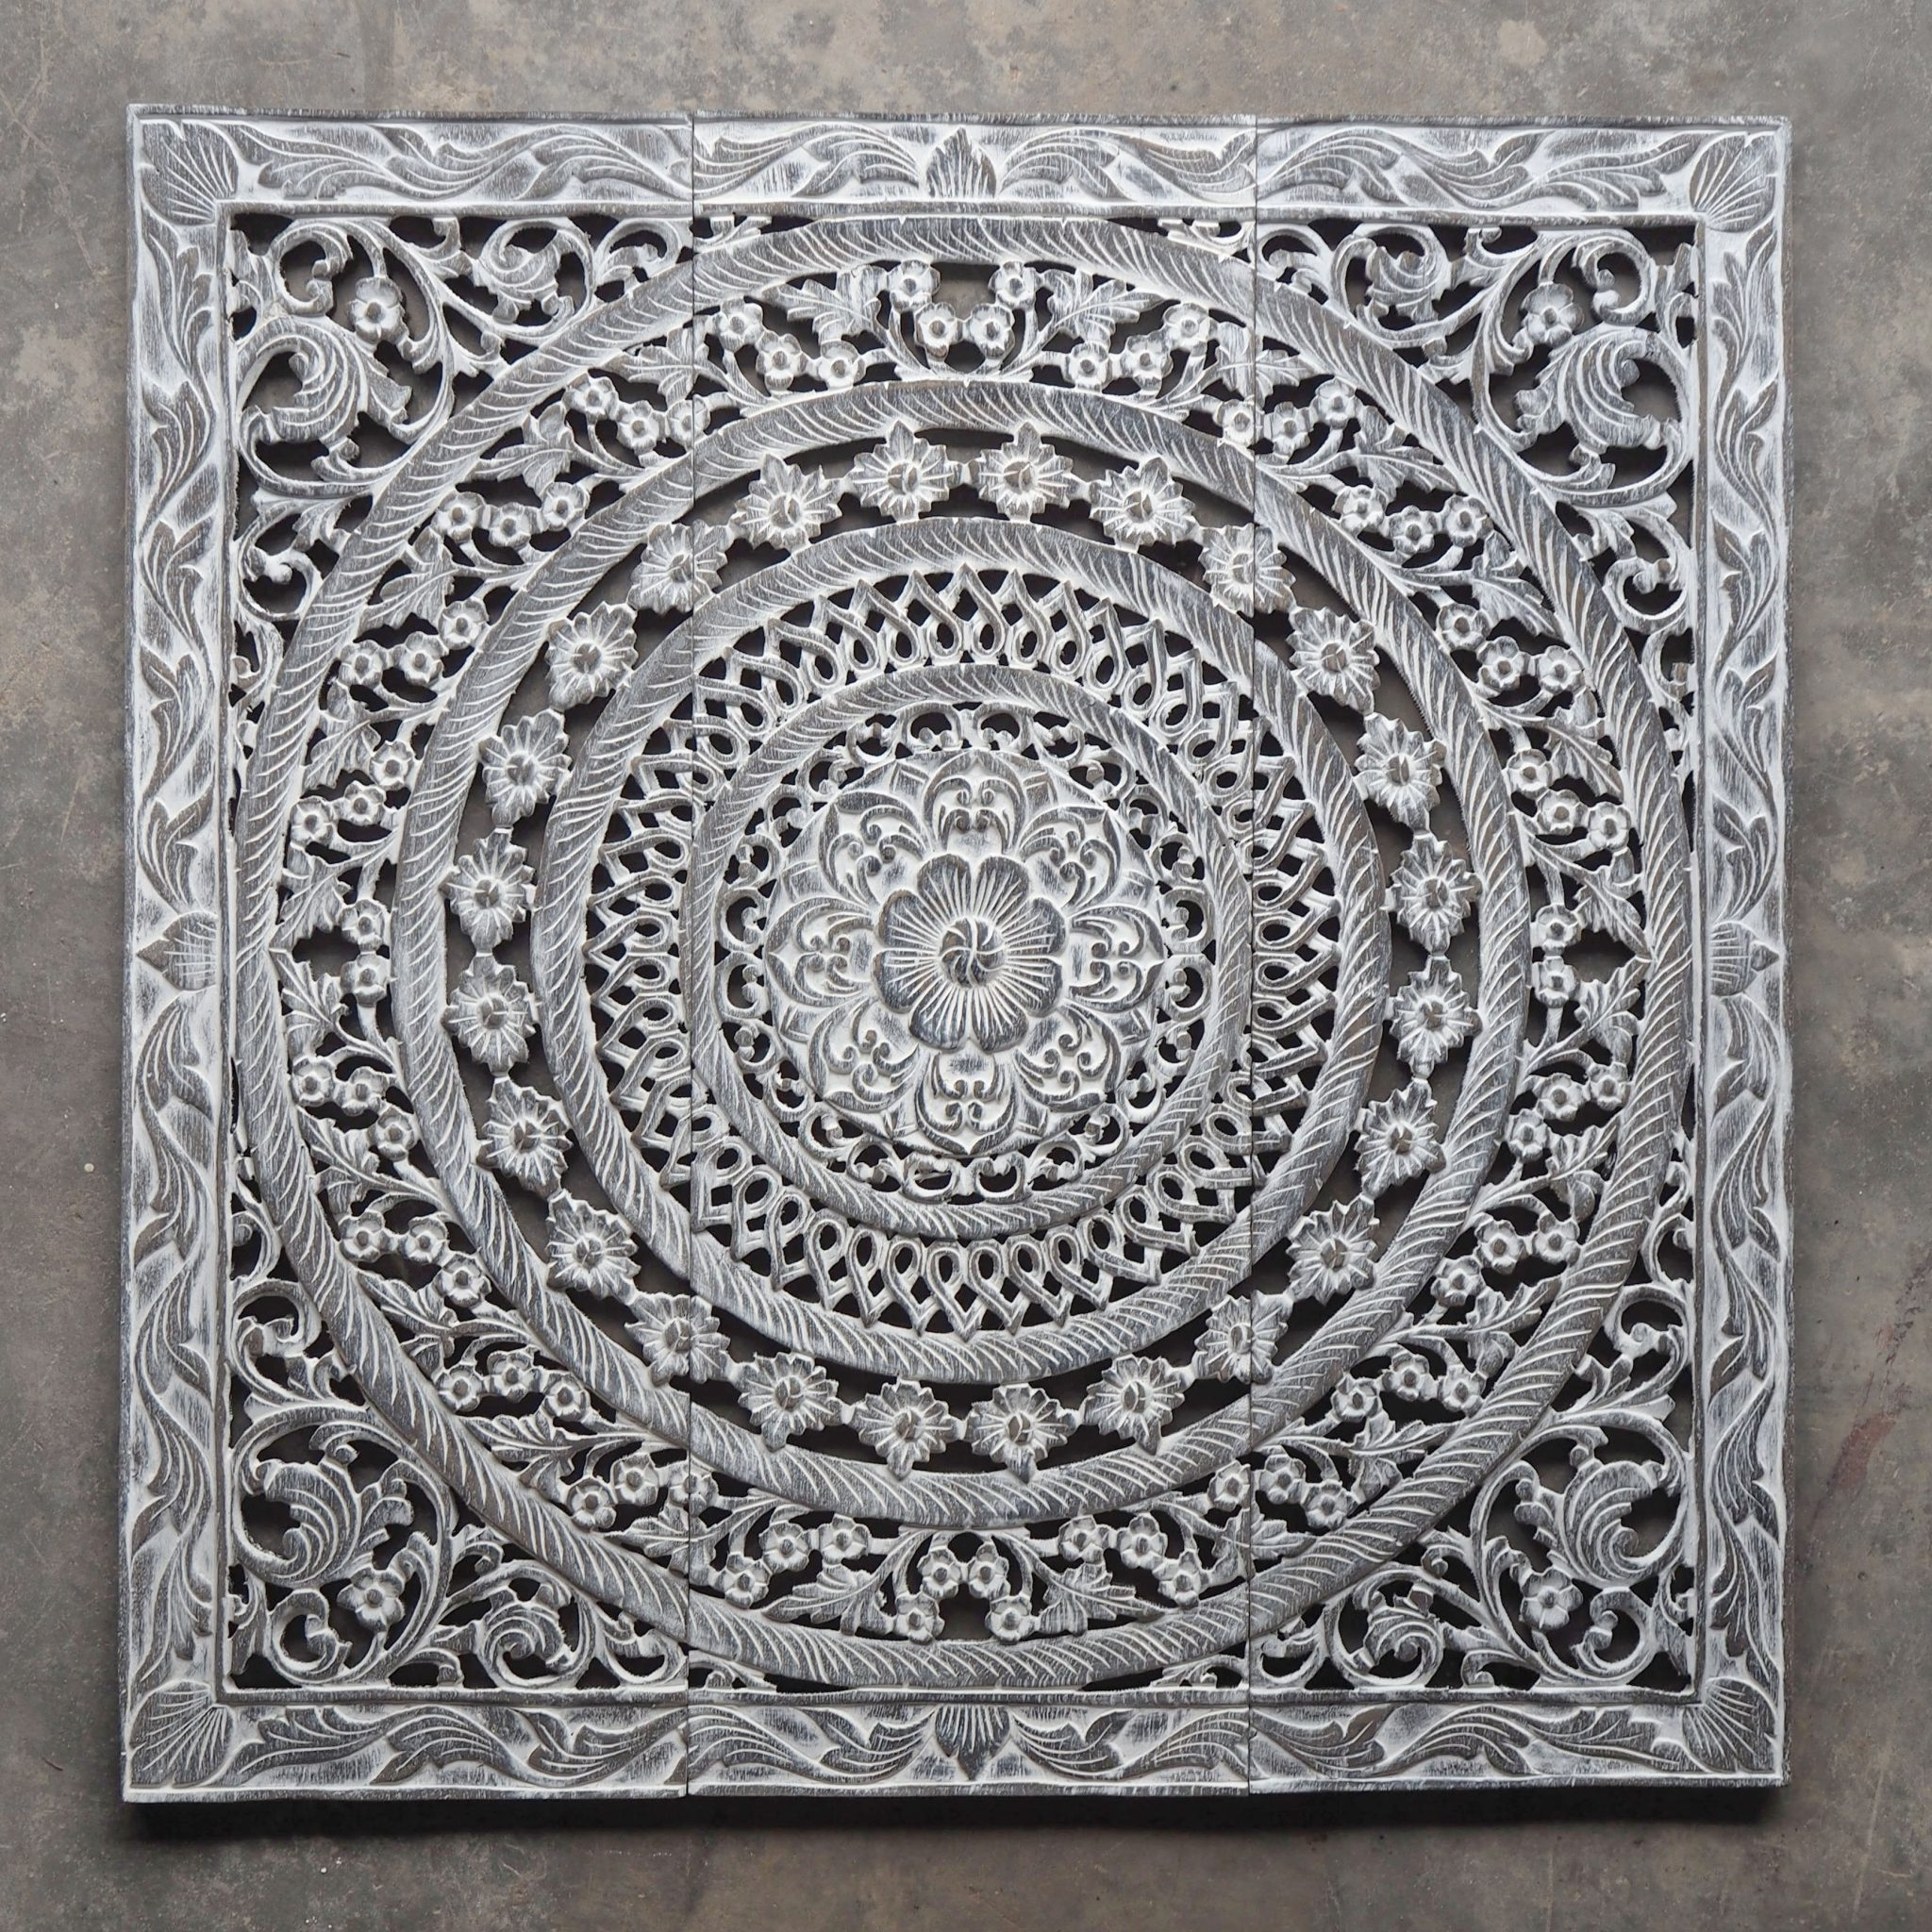 Wood Carved Wall Art Pertaining To Recent Buy Moroccan Decent Wood Carving Wall Art Hanging Online (View 4 of 15)